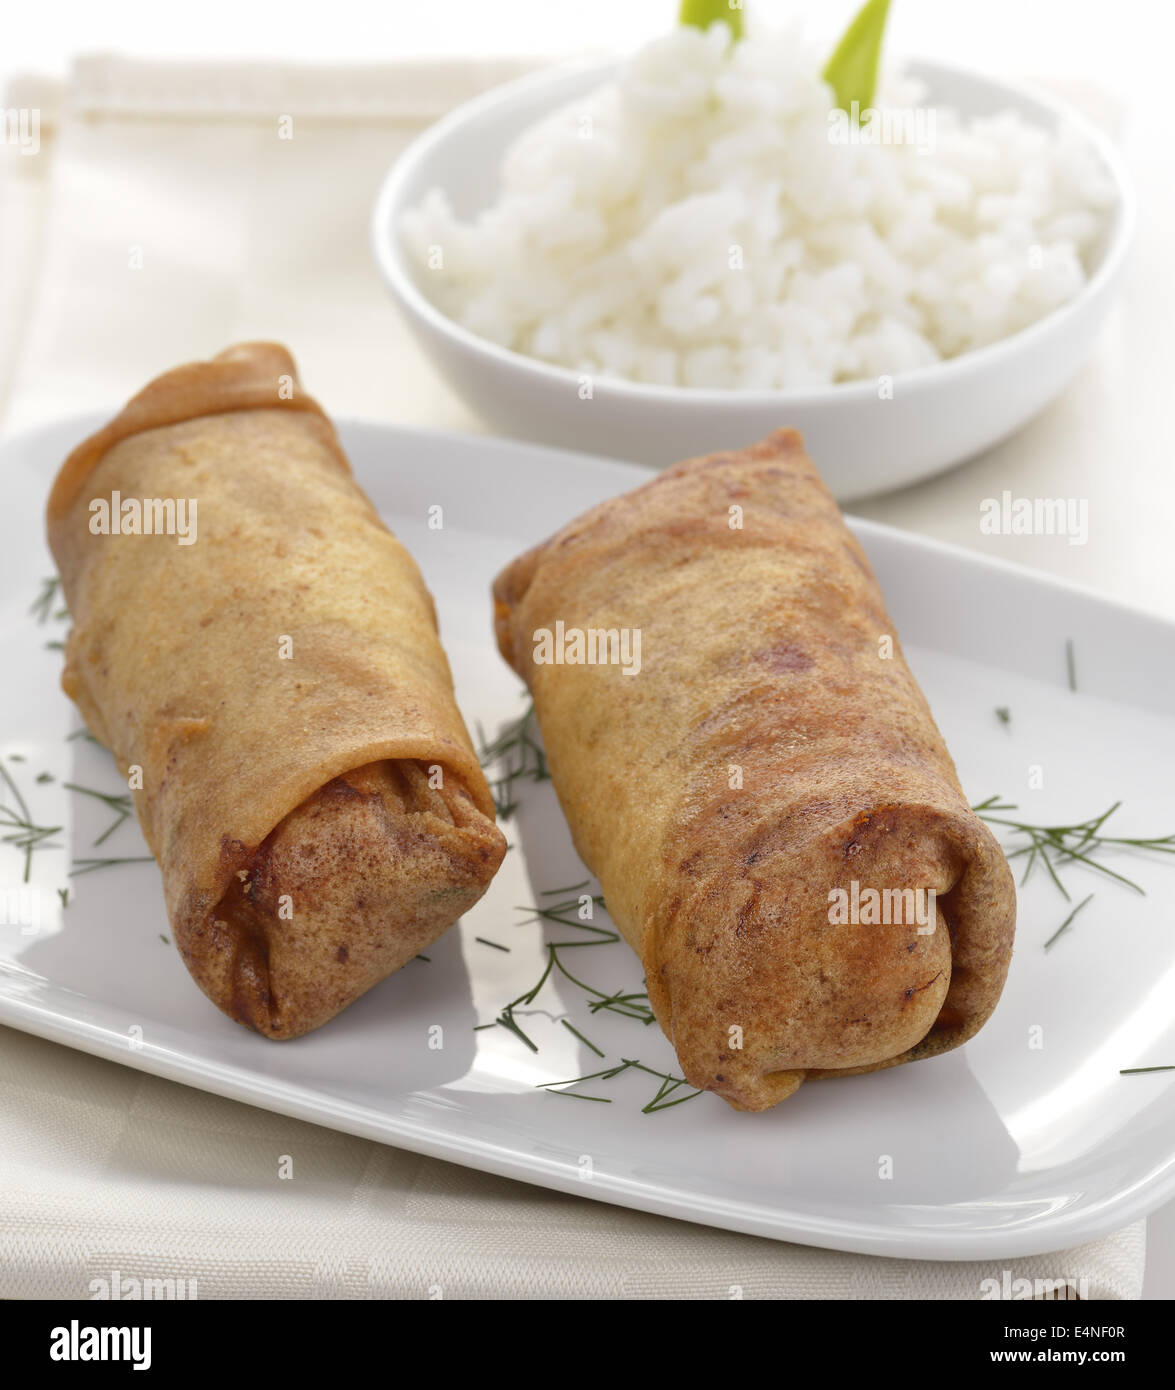 Fried Chicken Rolls - Stock Image